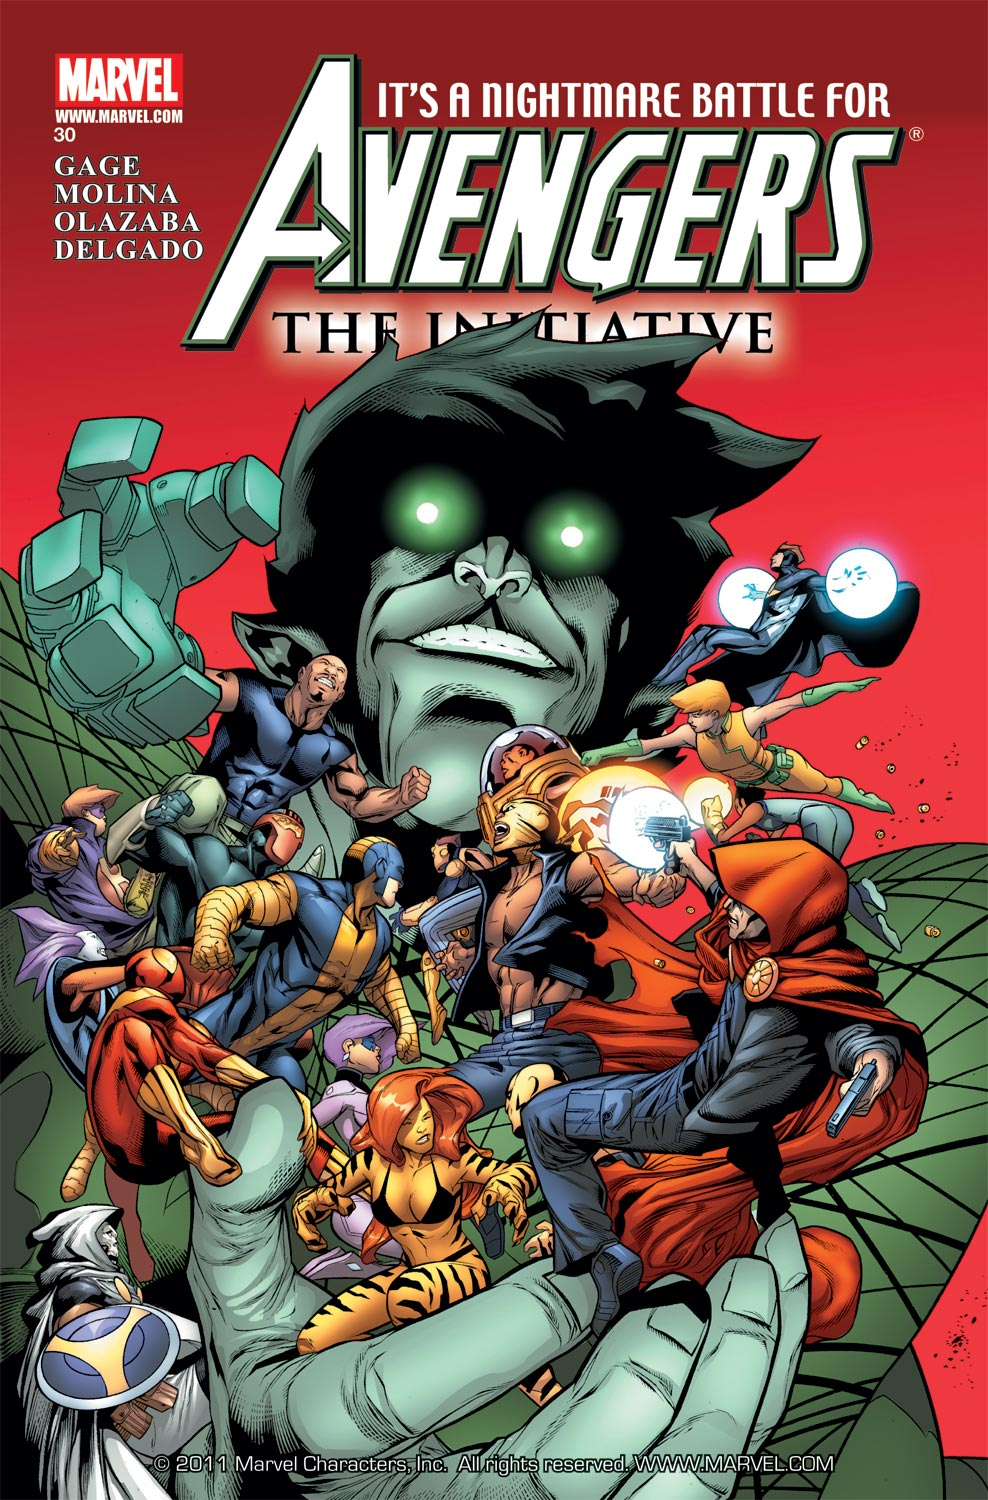 Avengers: The Initiative (2007) #30